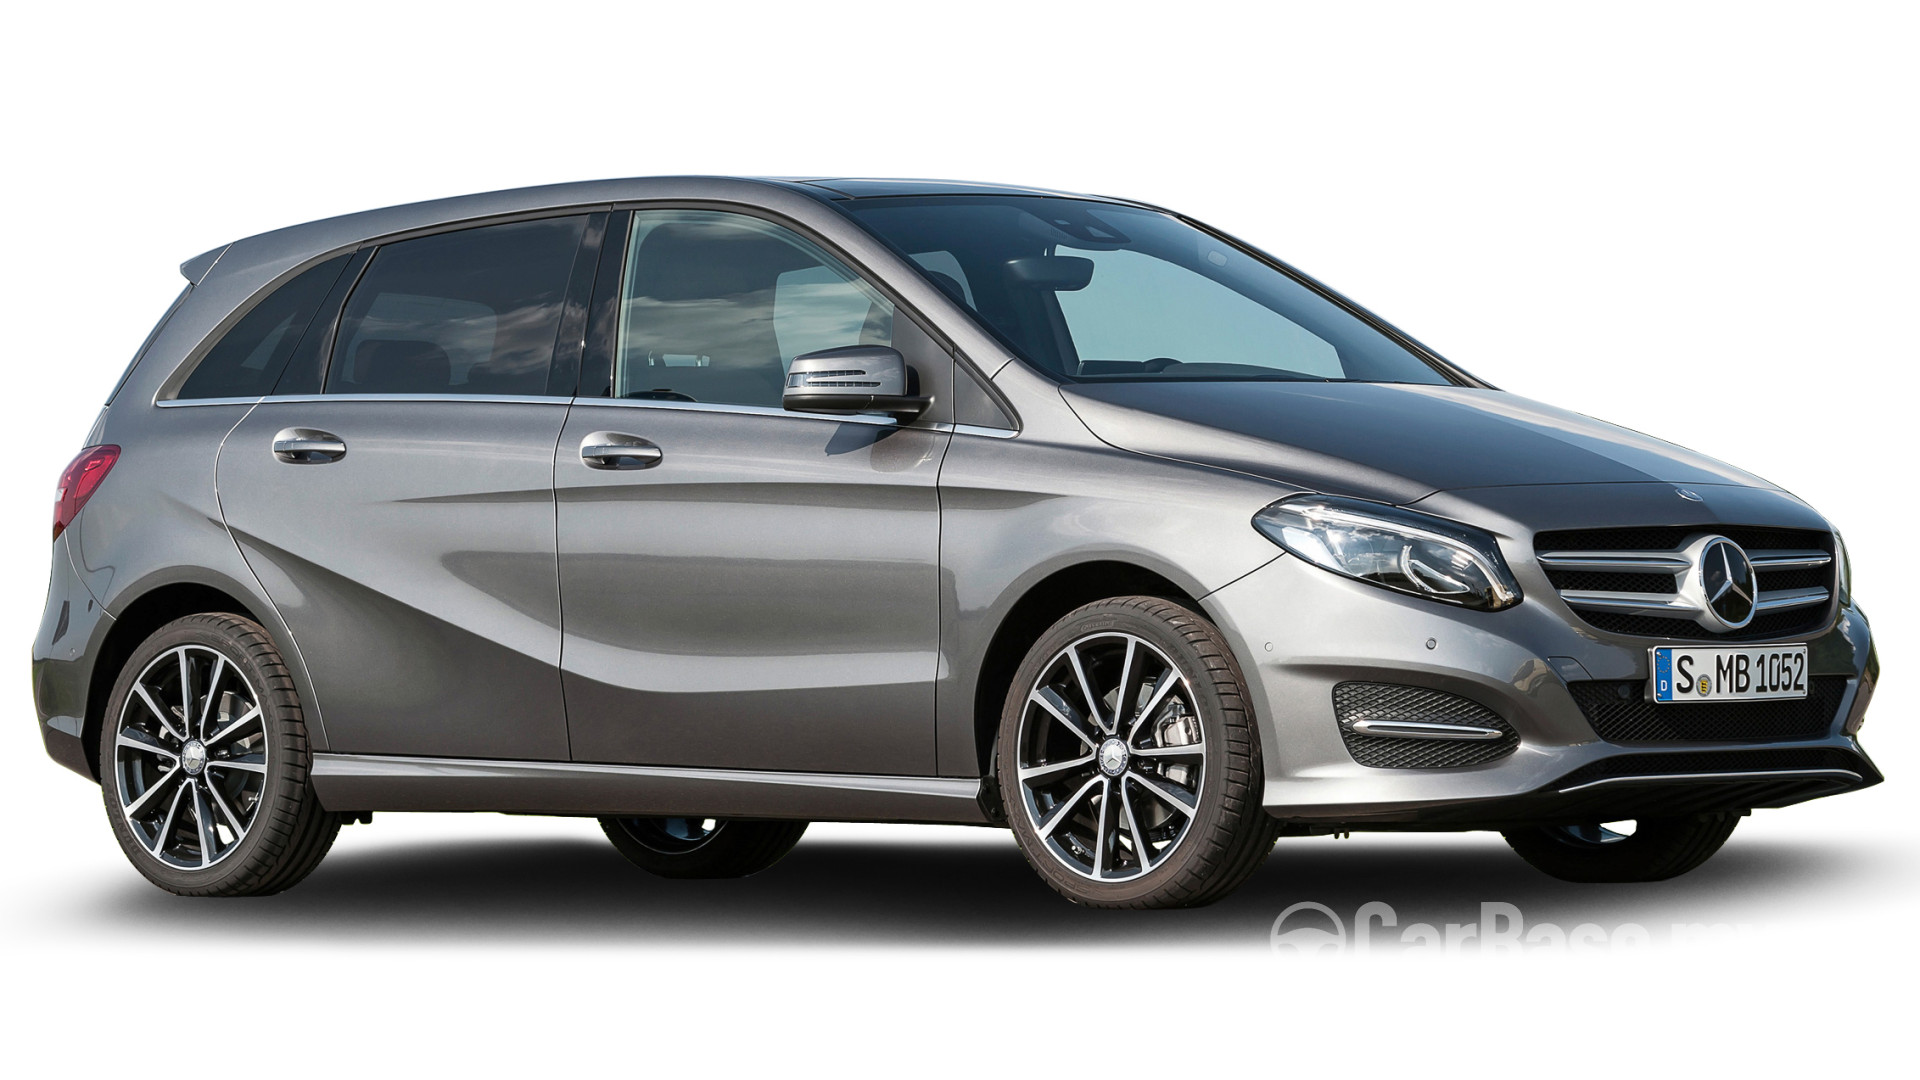 Mercedes benz b class w246 facelift 2015 exterior image for How much is b service on mercedes benz